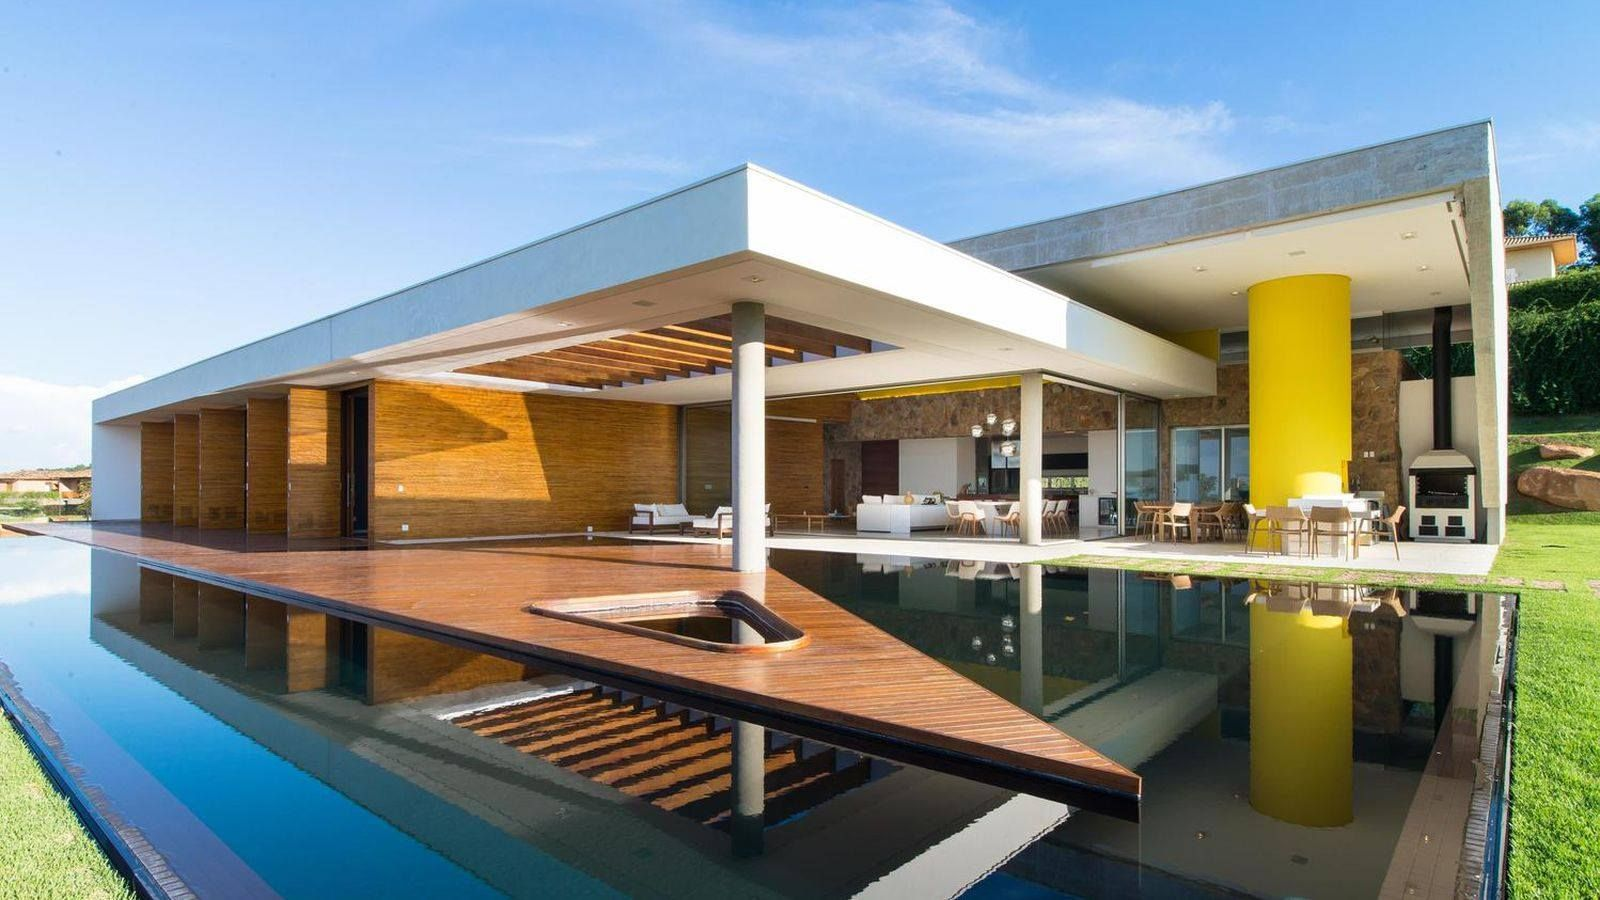 Amazing buildings city buildings contemporary design modern house design modern architecture